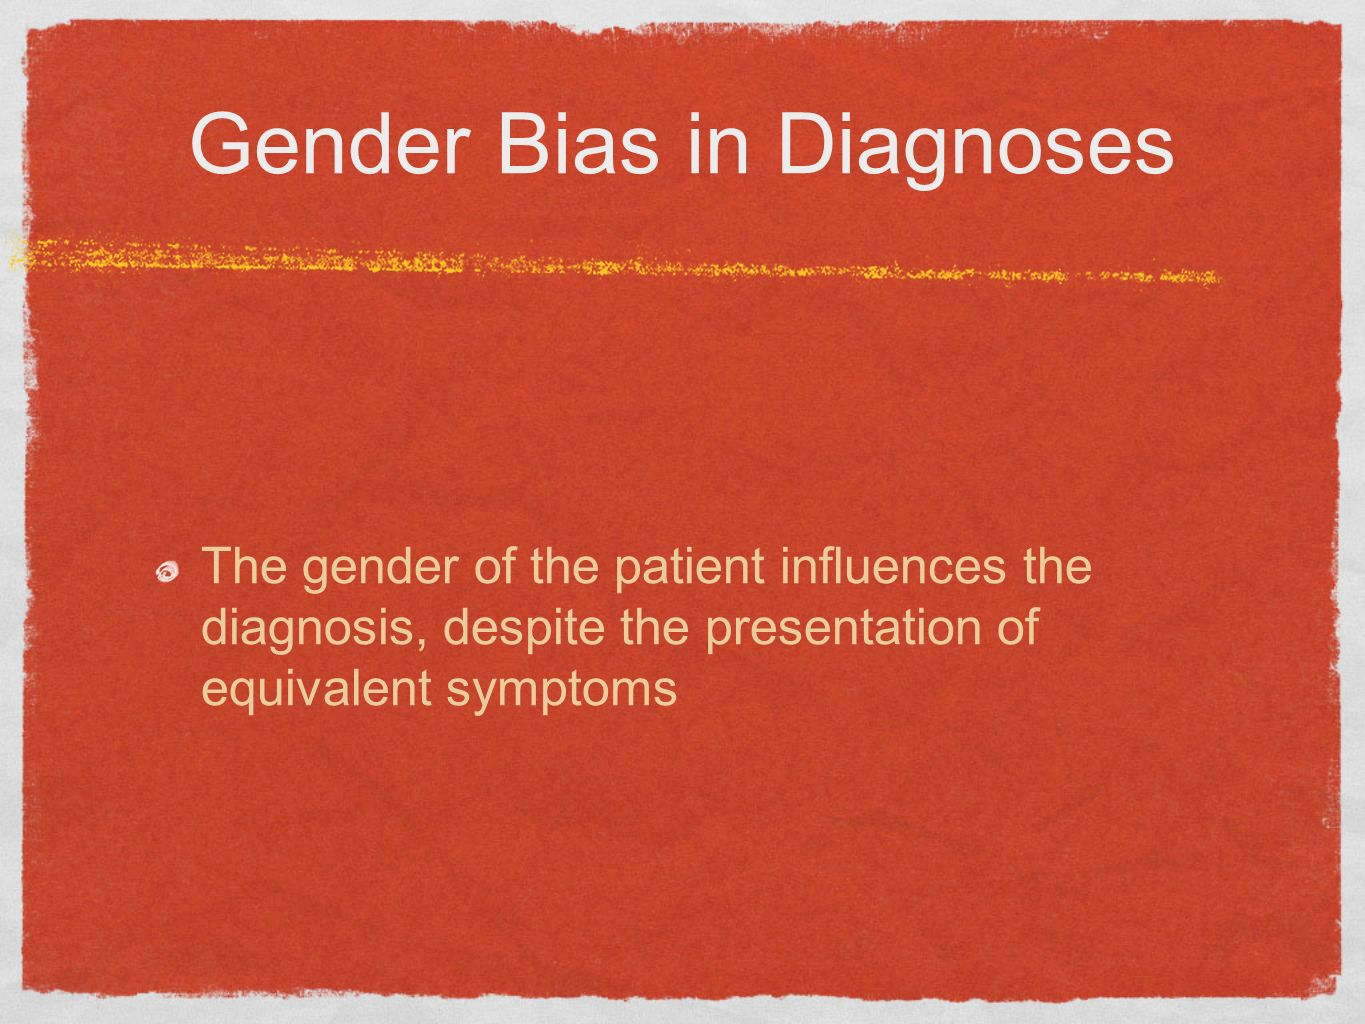 Gender Bias in Diagnoses